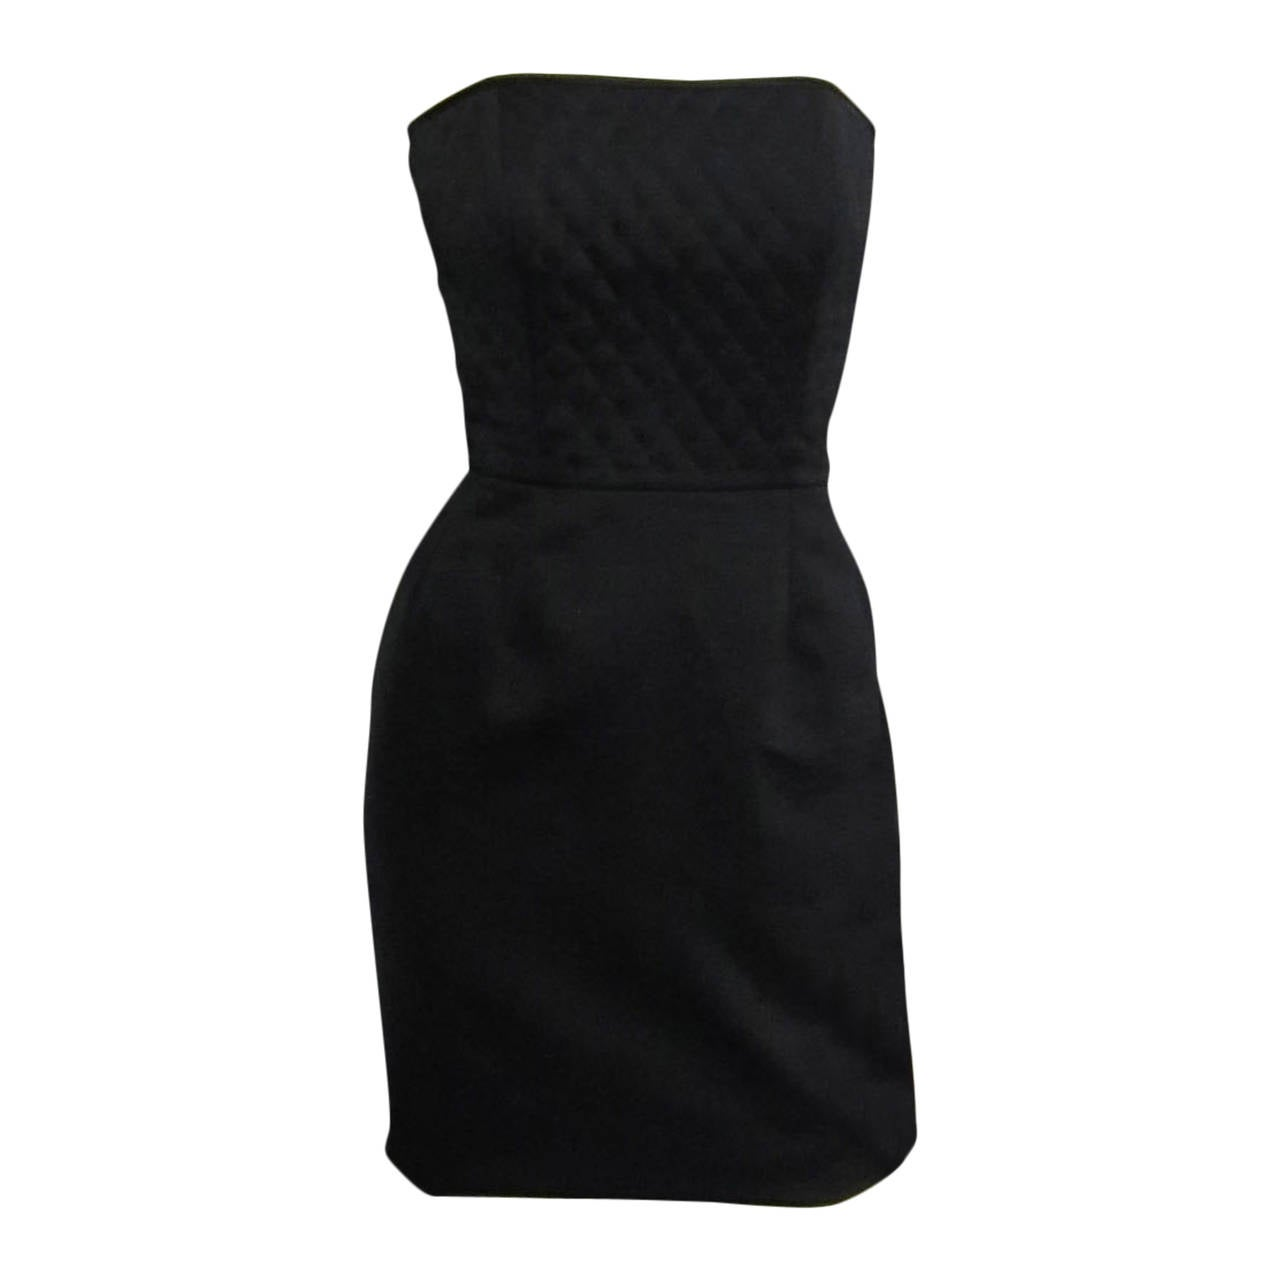 1980s VICTOR COSTA Quilted Little Black Dress For Sale